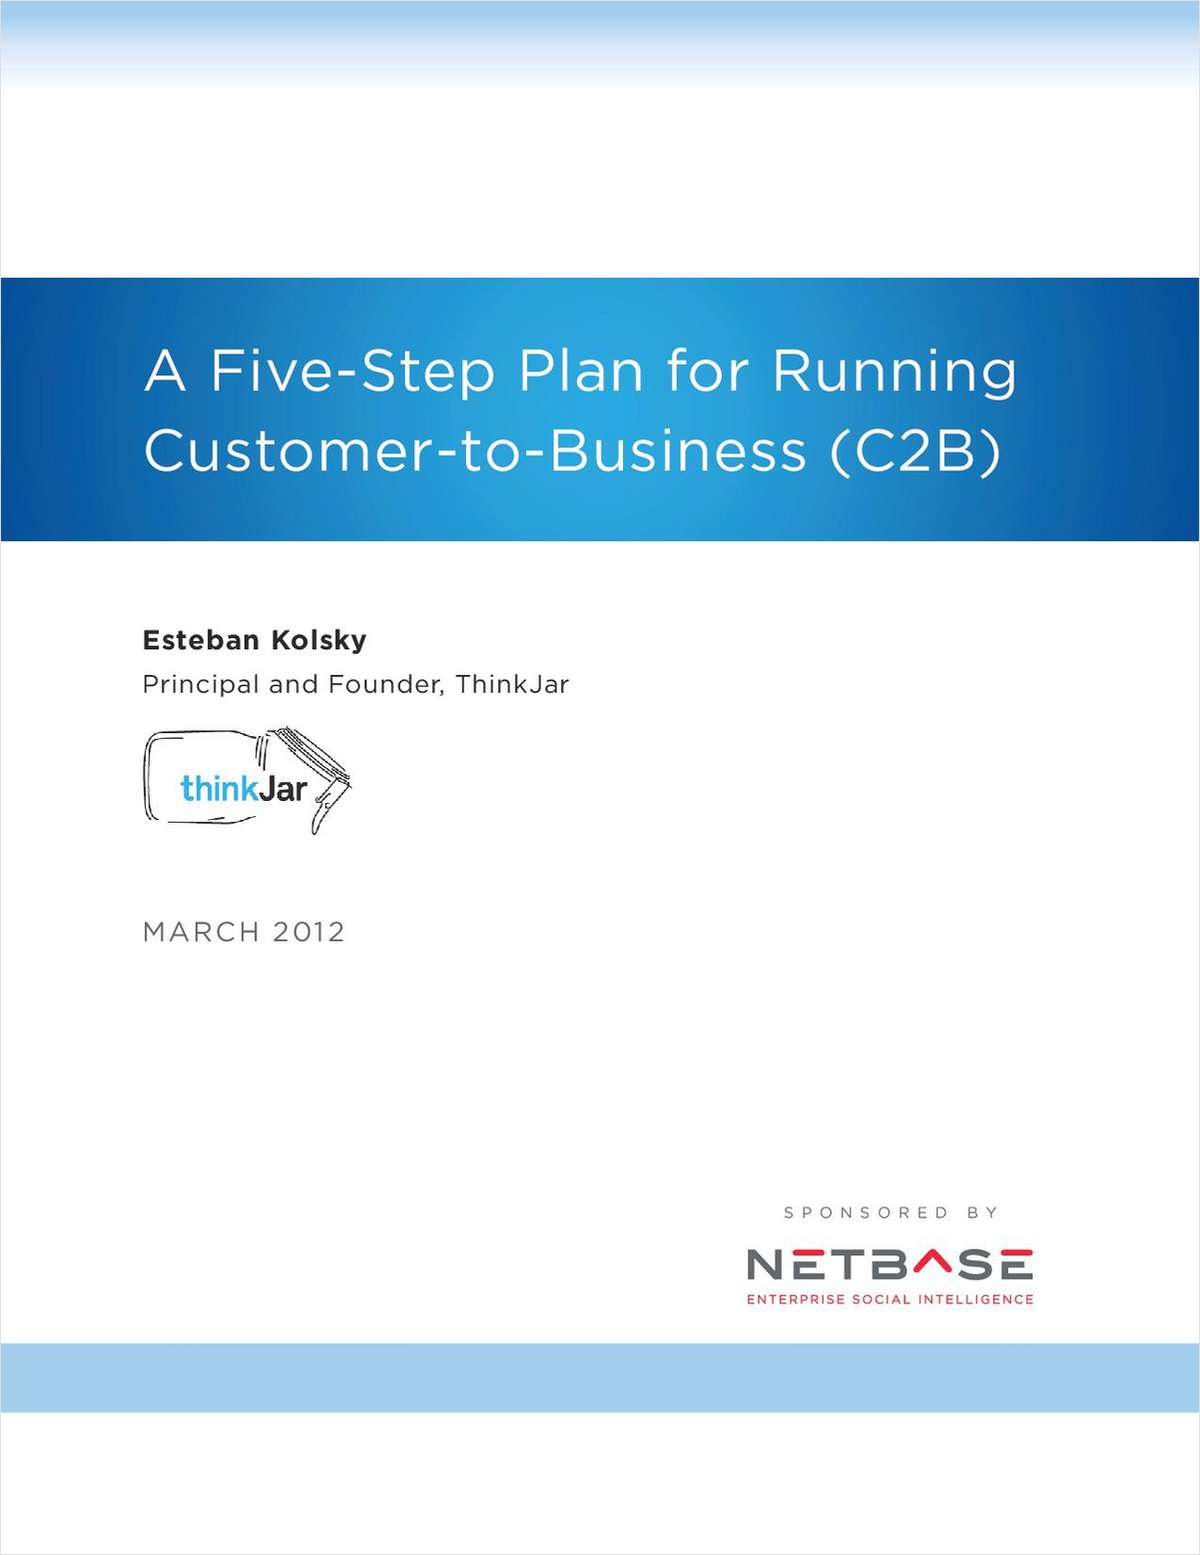 A 5-Step Plan for Running C2B -- Your Guide to Social Intelligence